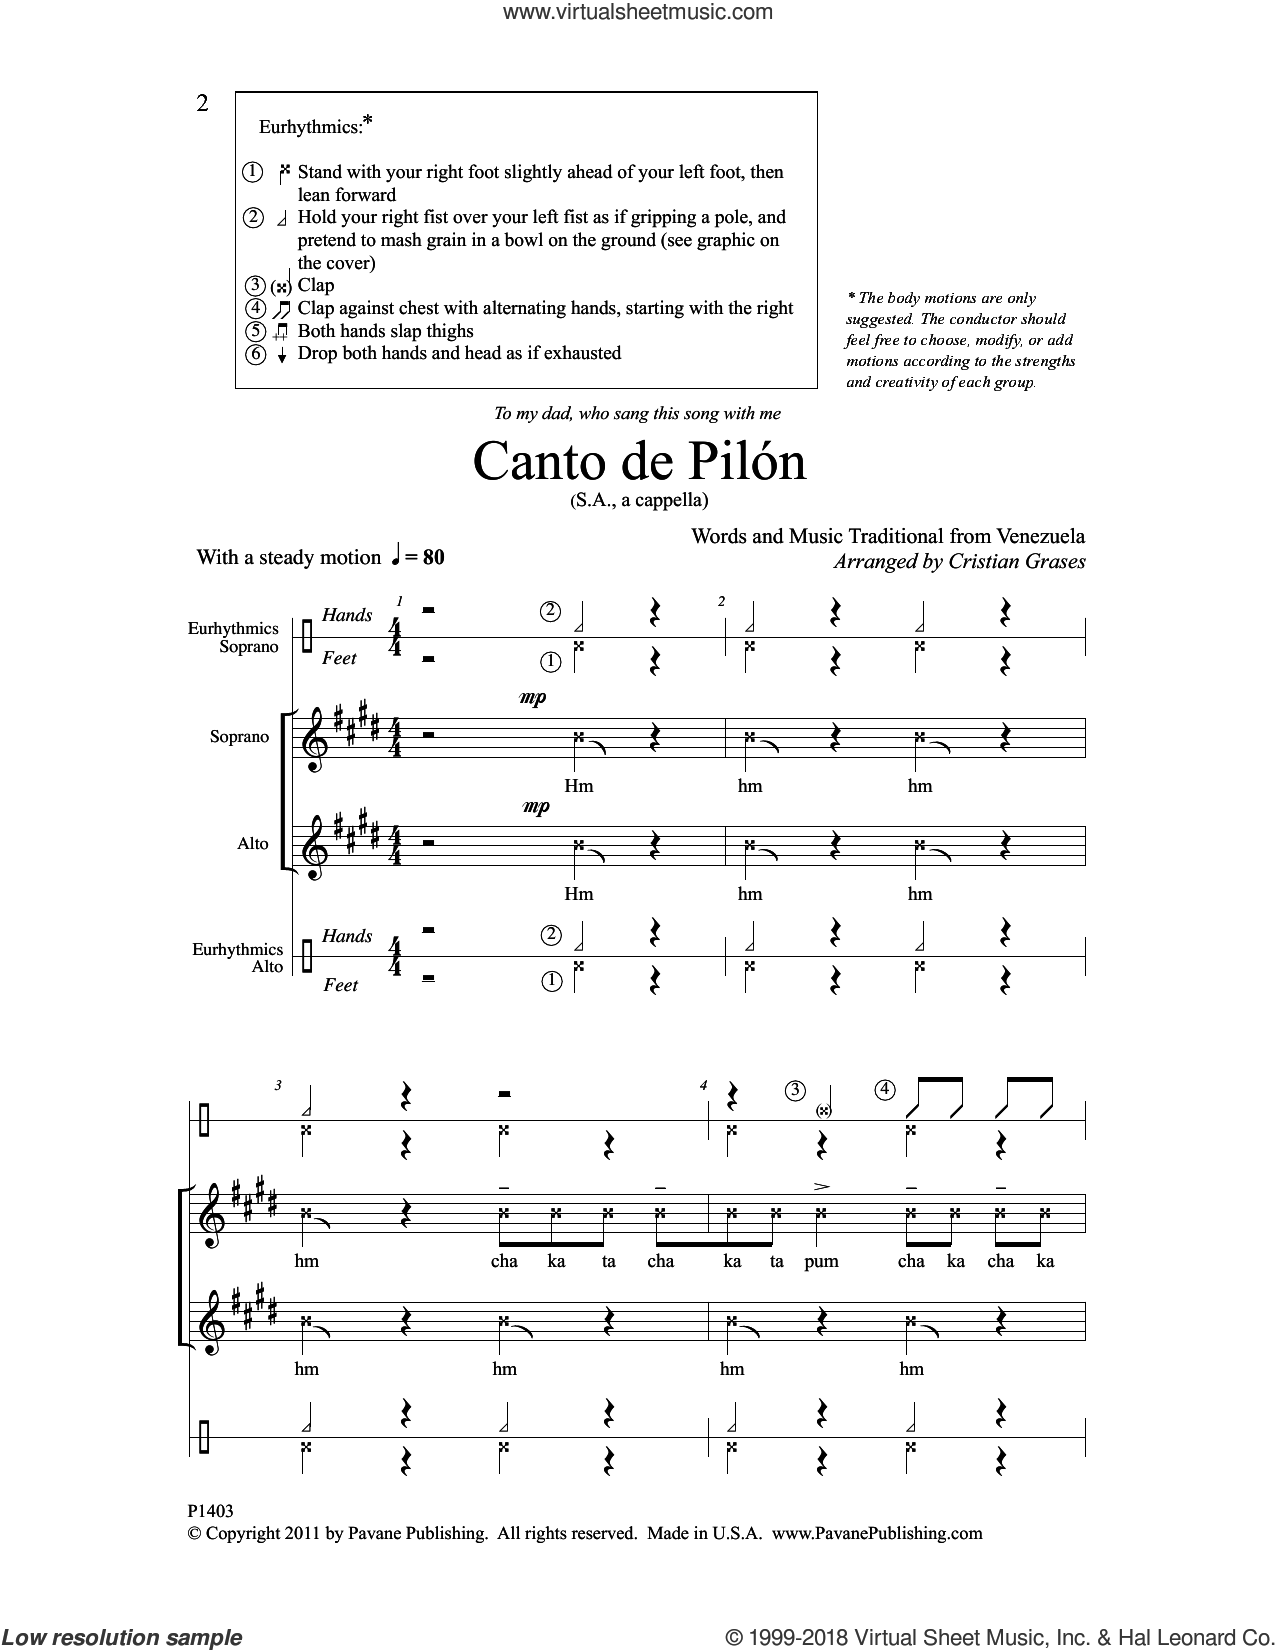 Canto de Pilon sheet music for choir by Cristian Grases, intermediate skill level